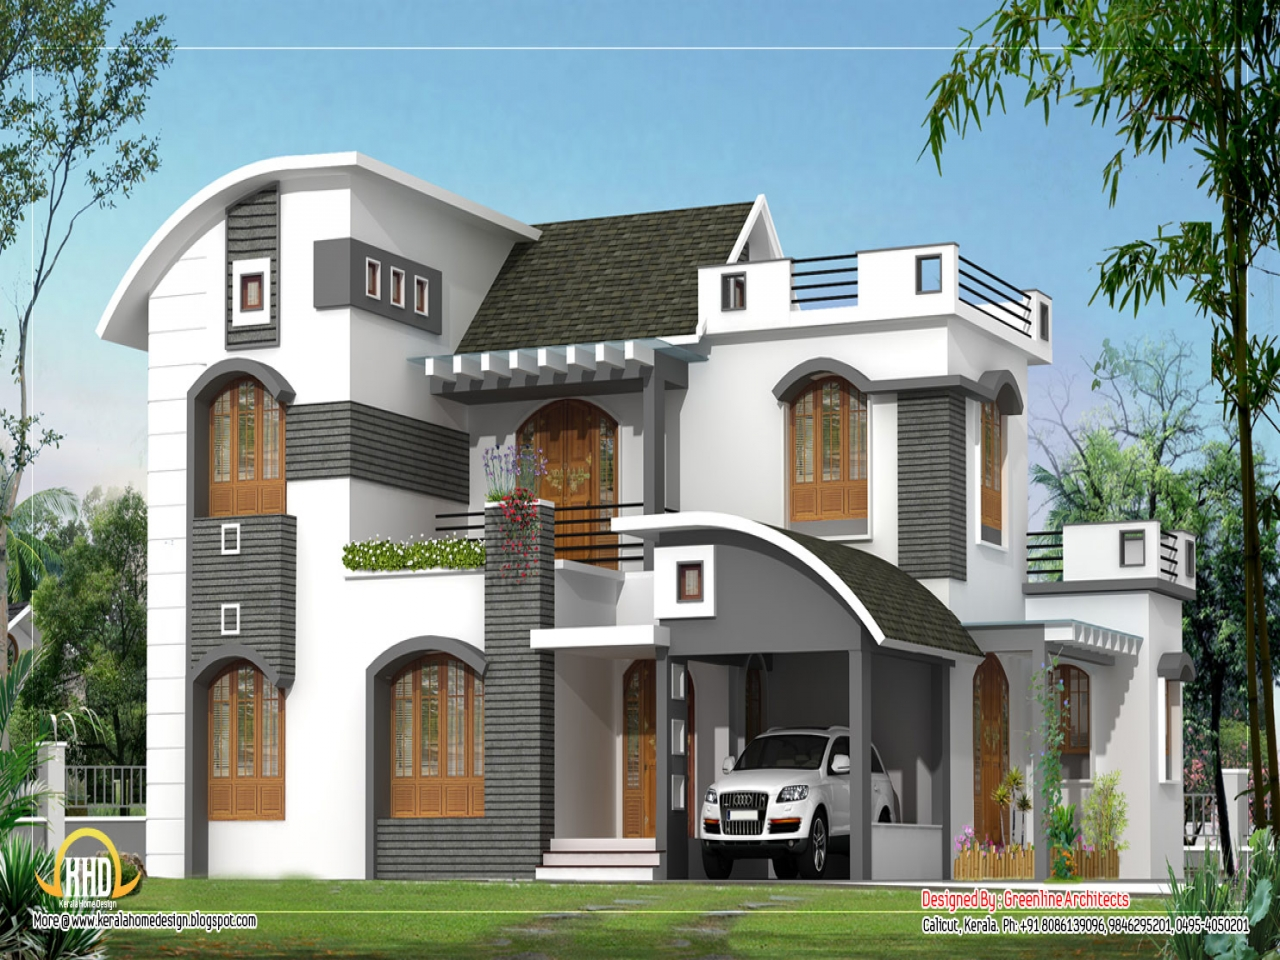 design home modern house plans big beautiful dream homes lrg d82438d6410a5d39 - 17+ Modern Beautiful Small House Designs Pictures Gif